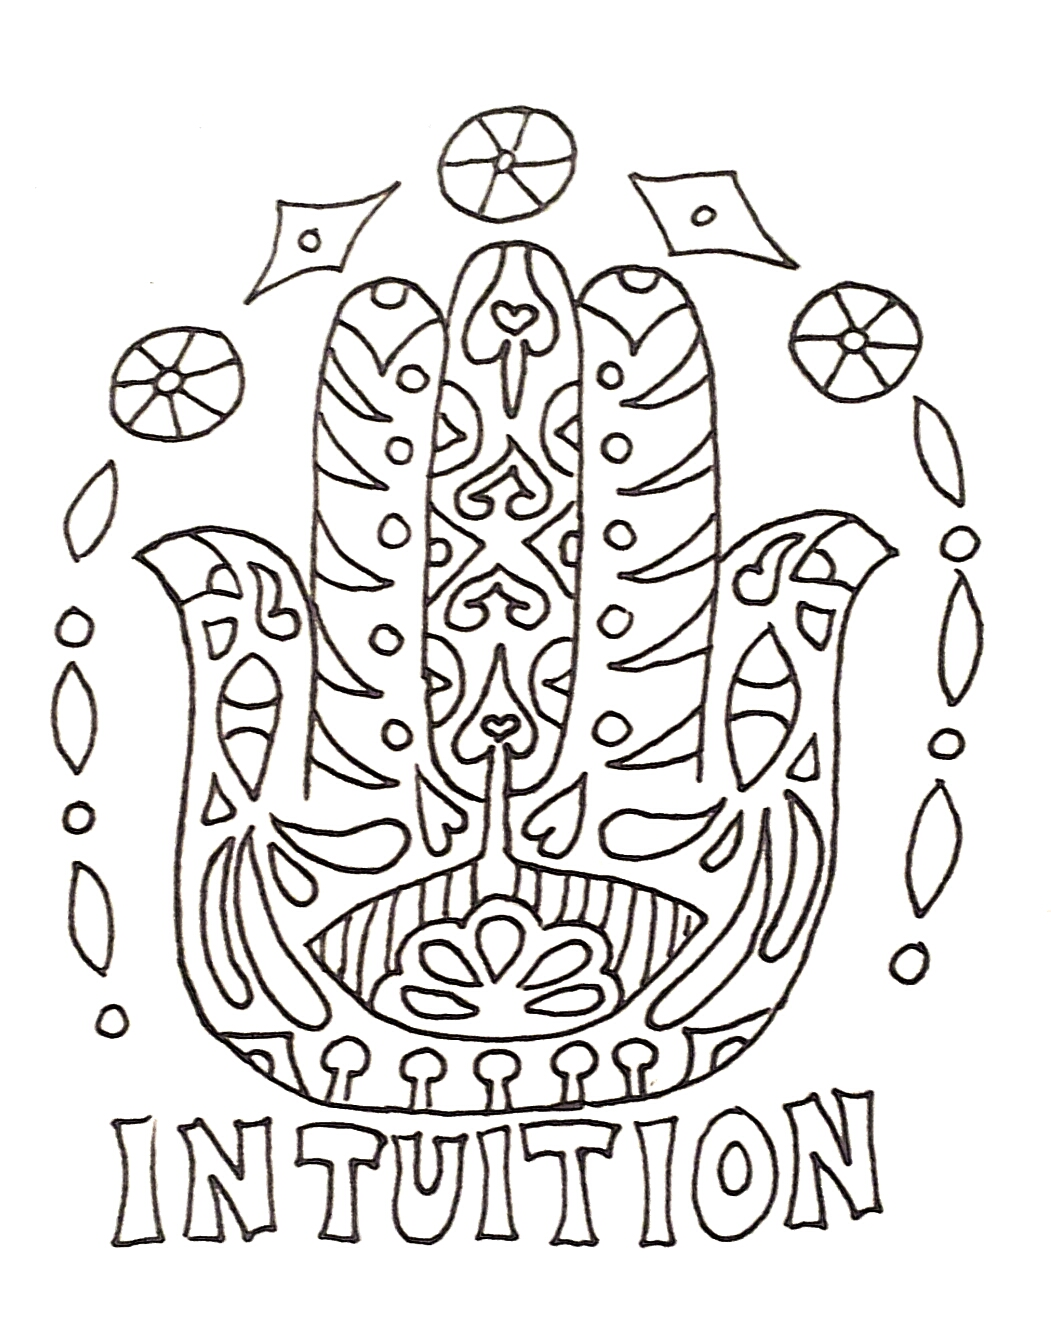 Affirmation Coloring Pages Sketch Coloring Page